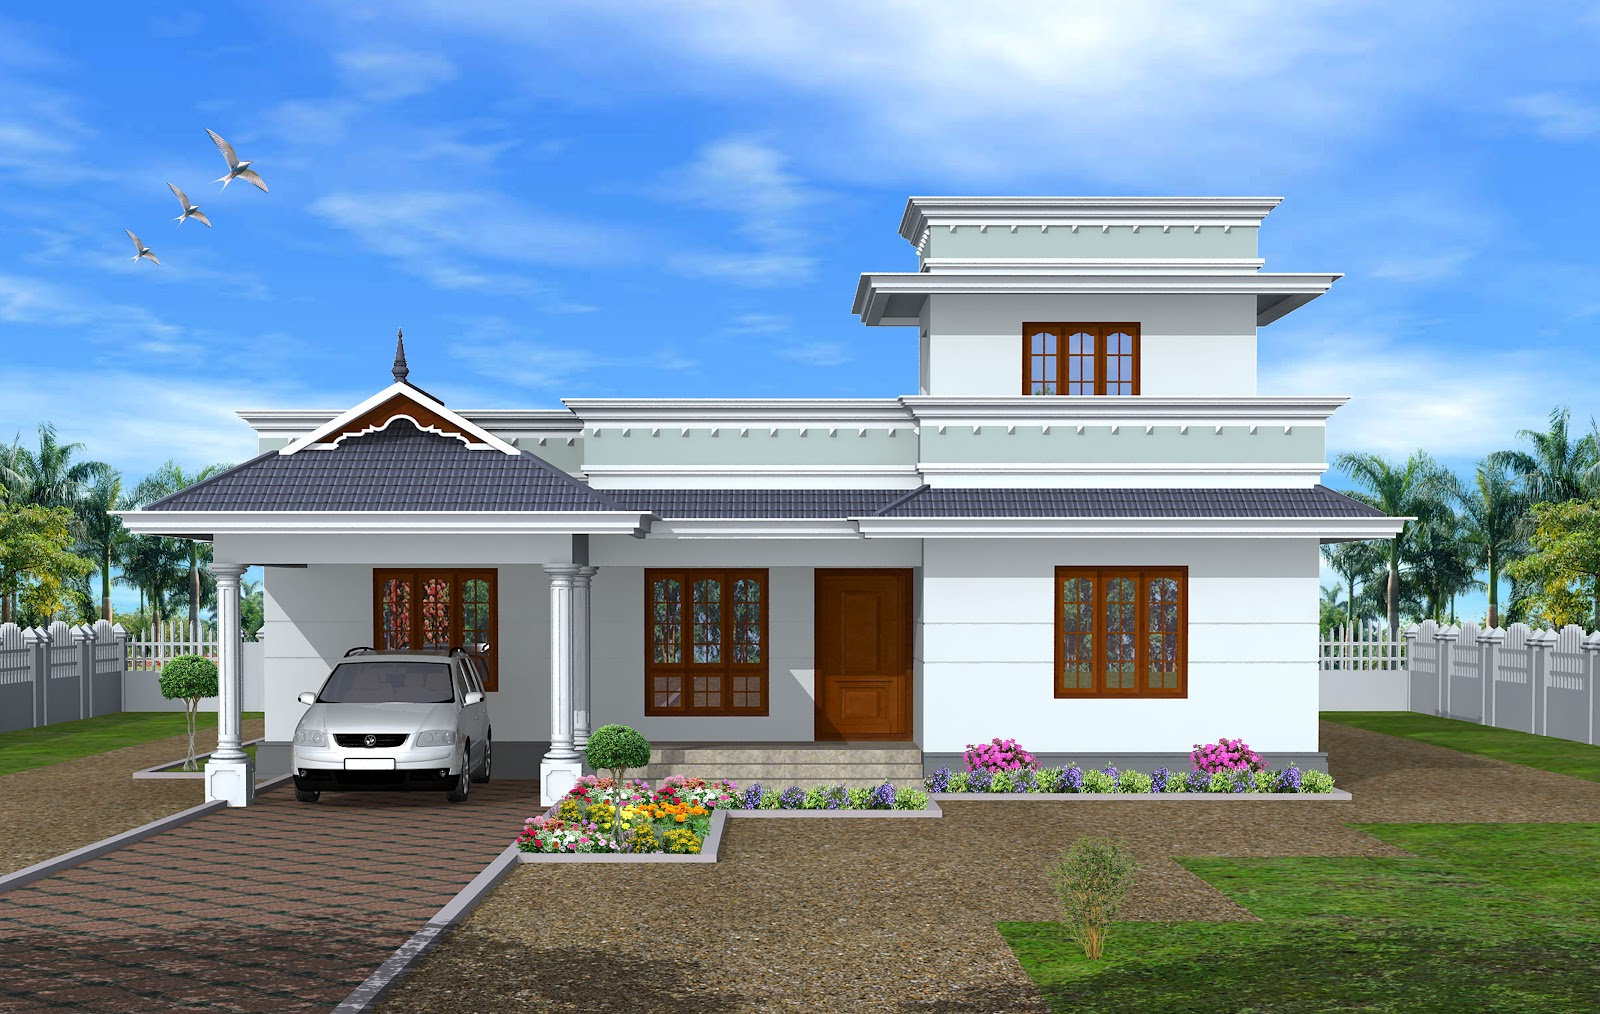 Green homes construction single floor kerala model house for Kerala style single storey house plans